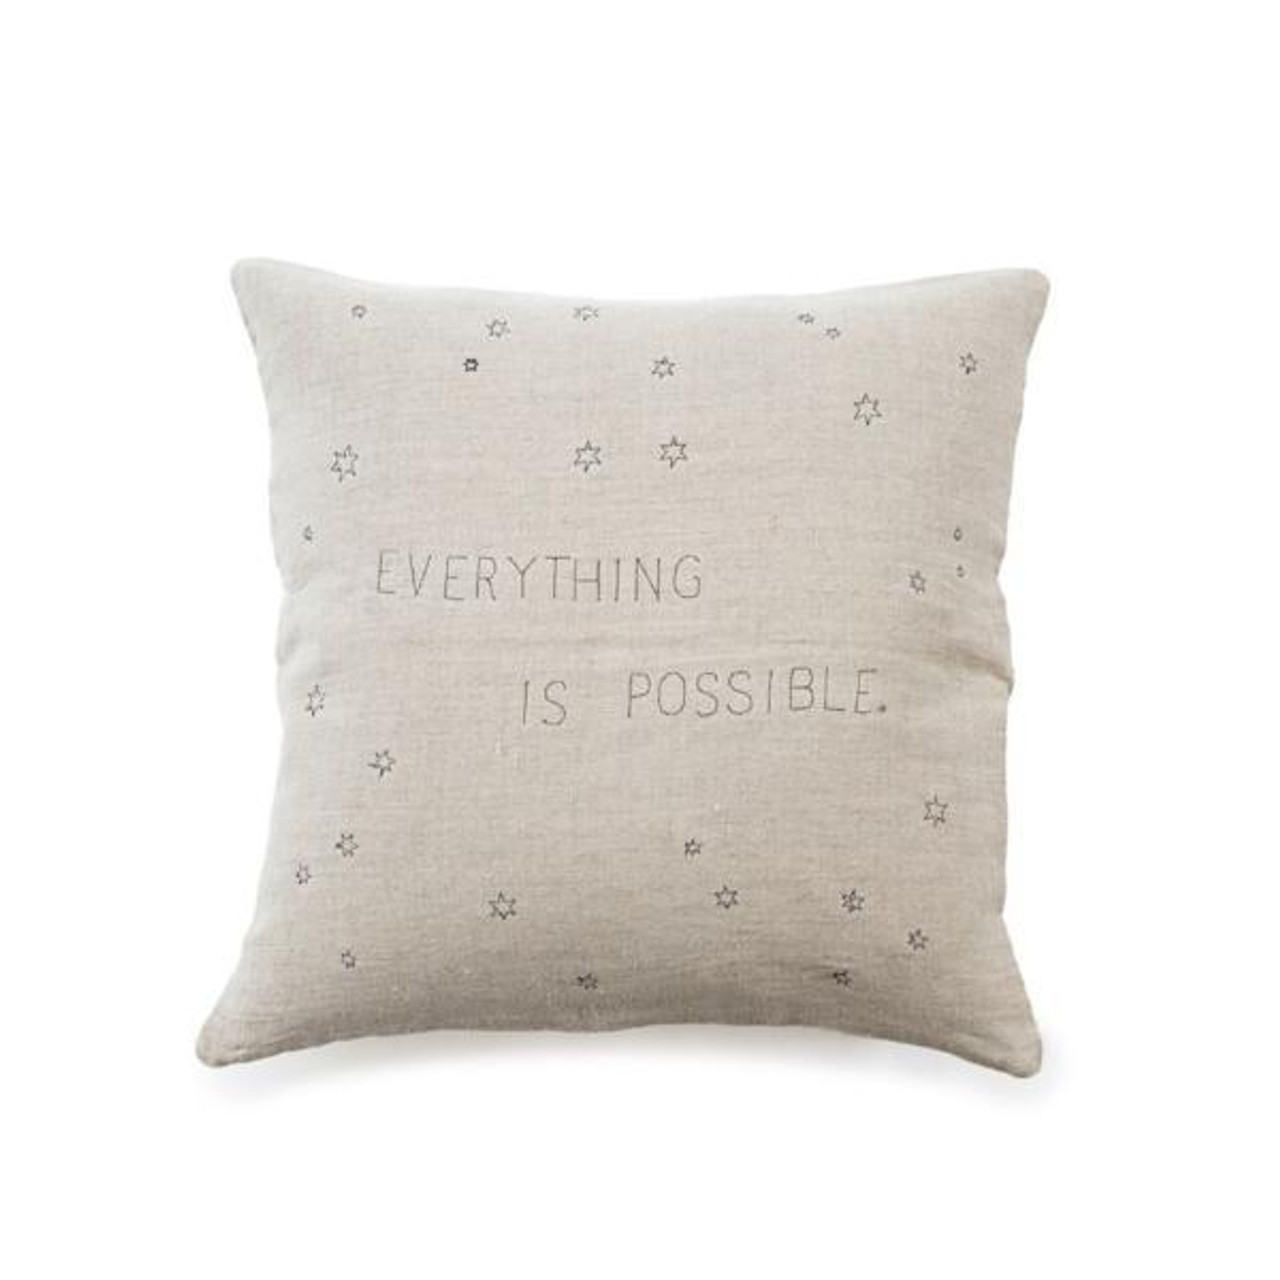 everything is possible pillow